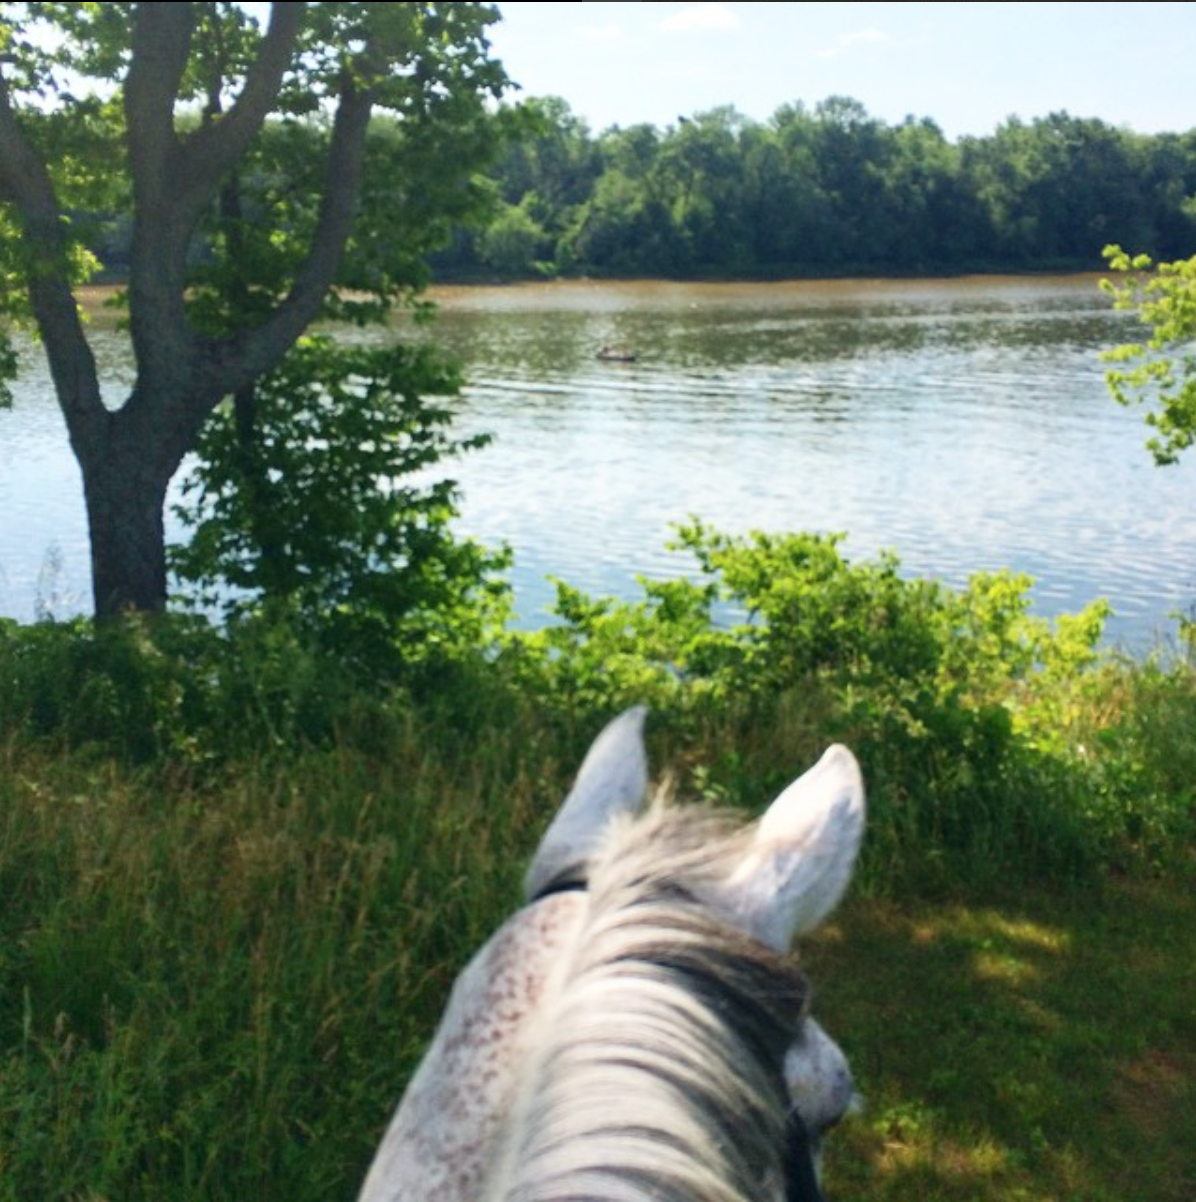 Trail ride in Virginia overlooking the Potomac River